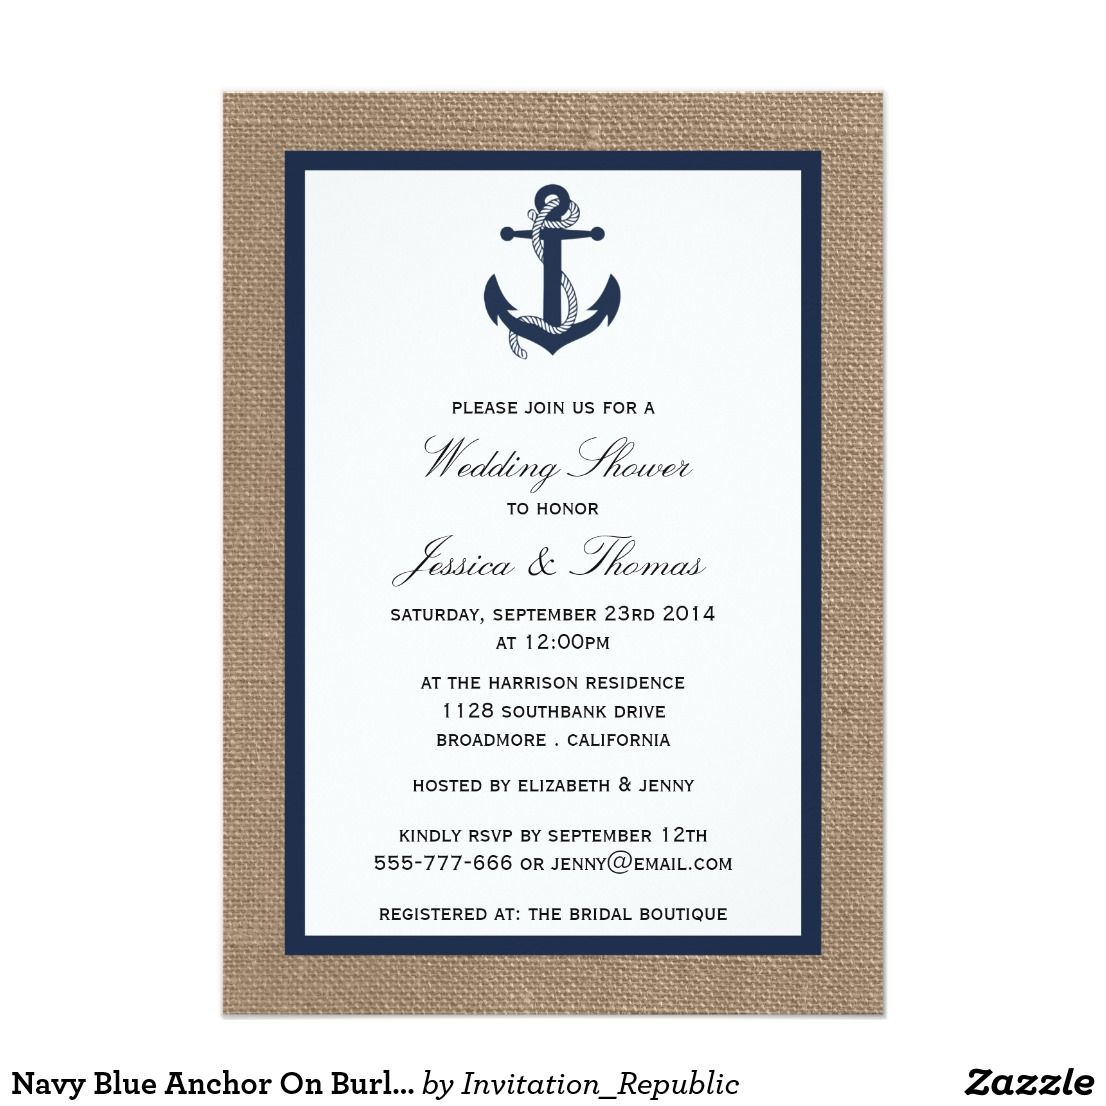 Navy Blue Anchor On Burlap Nautical Wedding Shower Simple Wedding